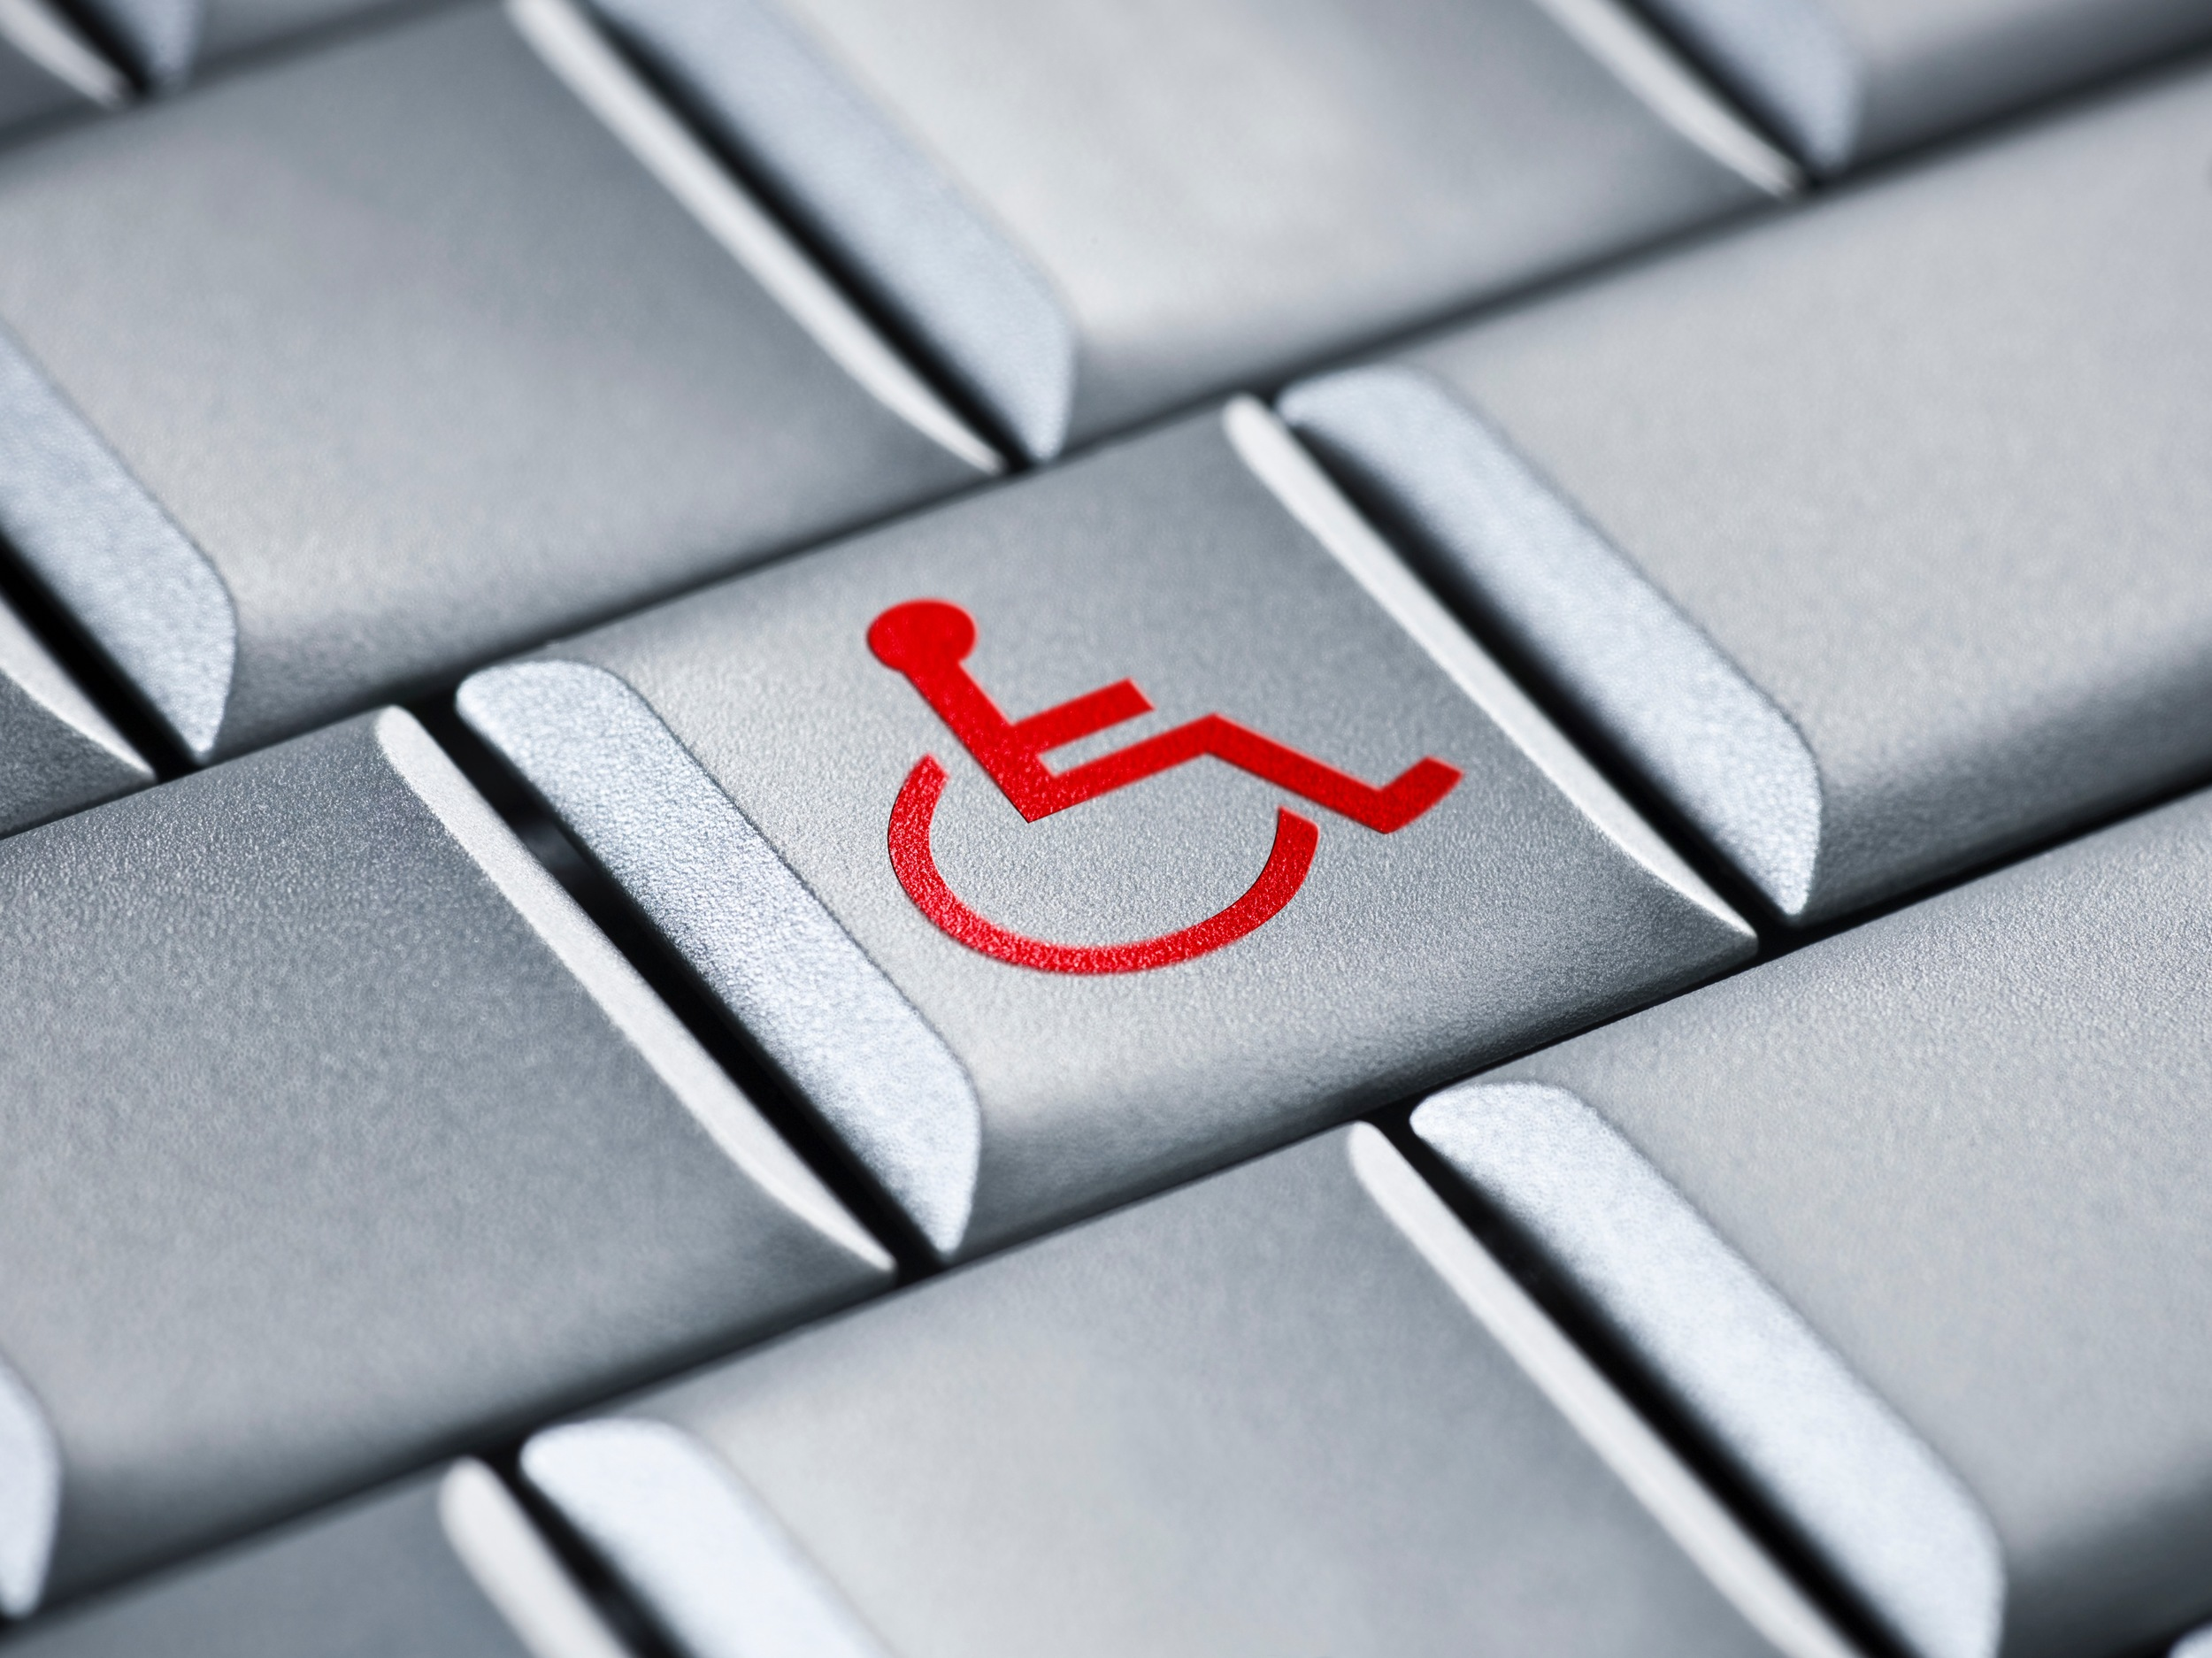 Close up picture of a grey computer keyboard, with a red wheelchair symbol on the center key